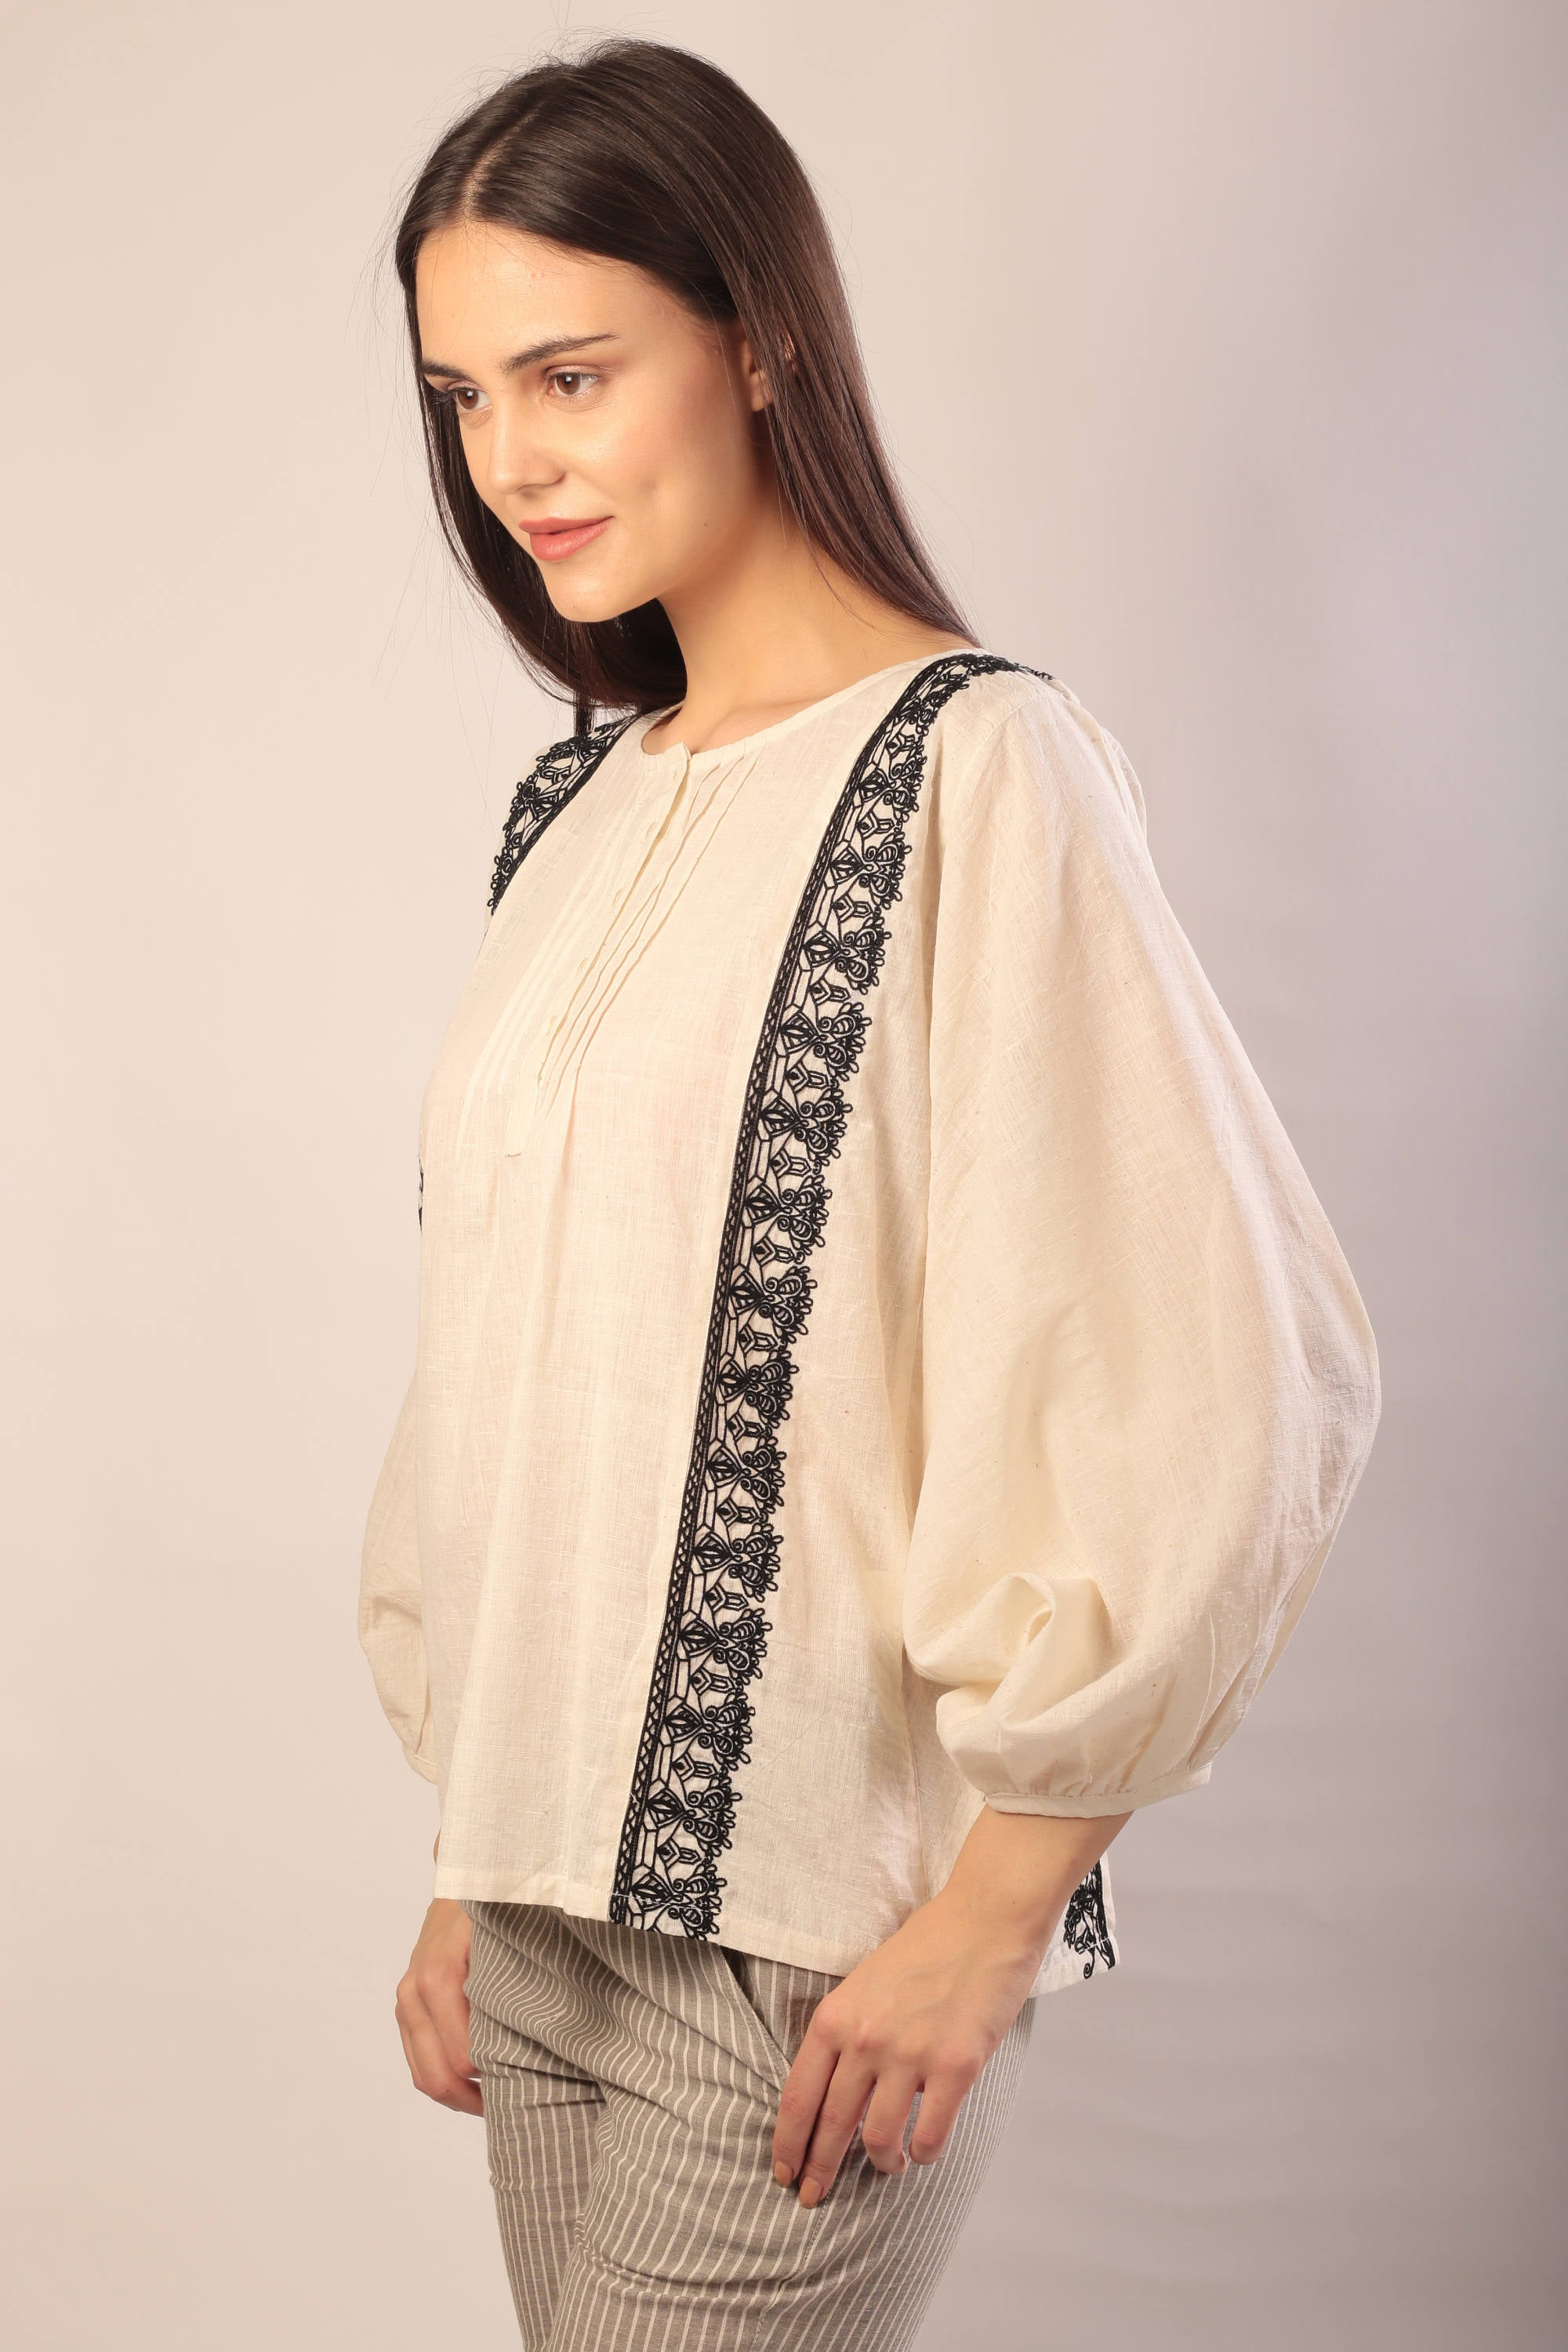 side view of woman standing in an ivory khadi long sleeve blouse with black hand embroidery